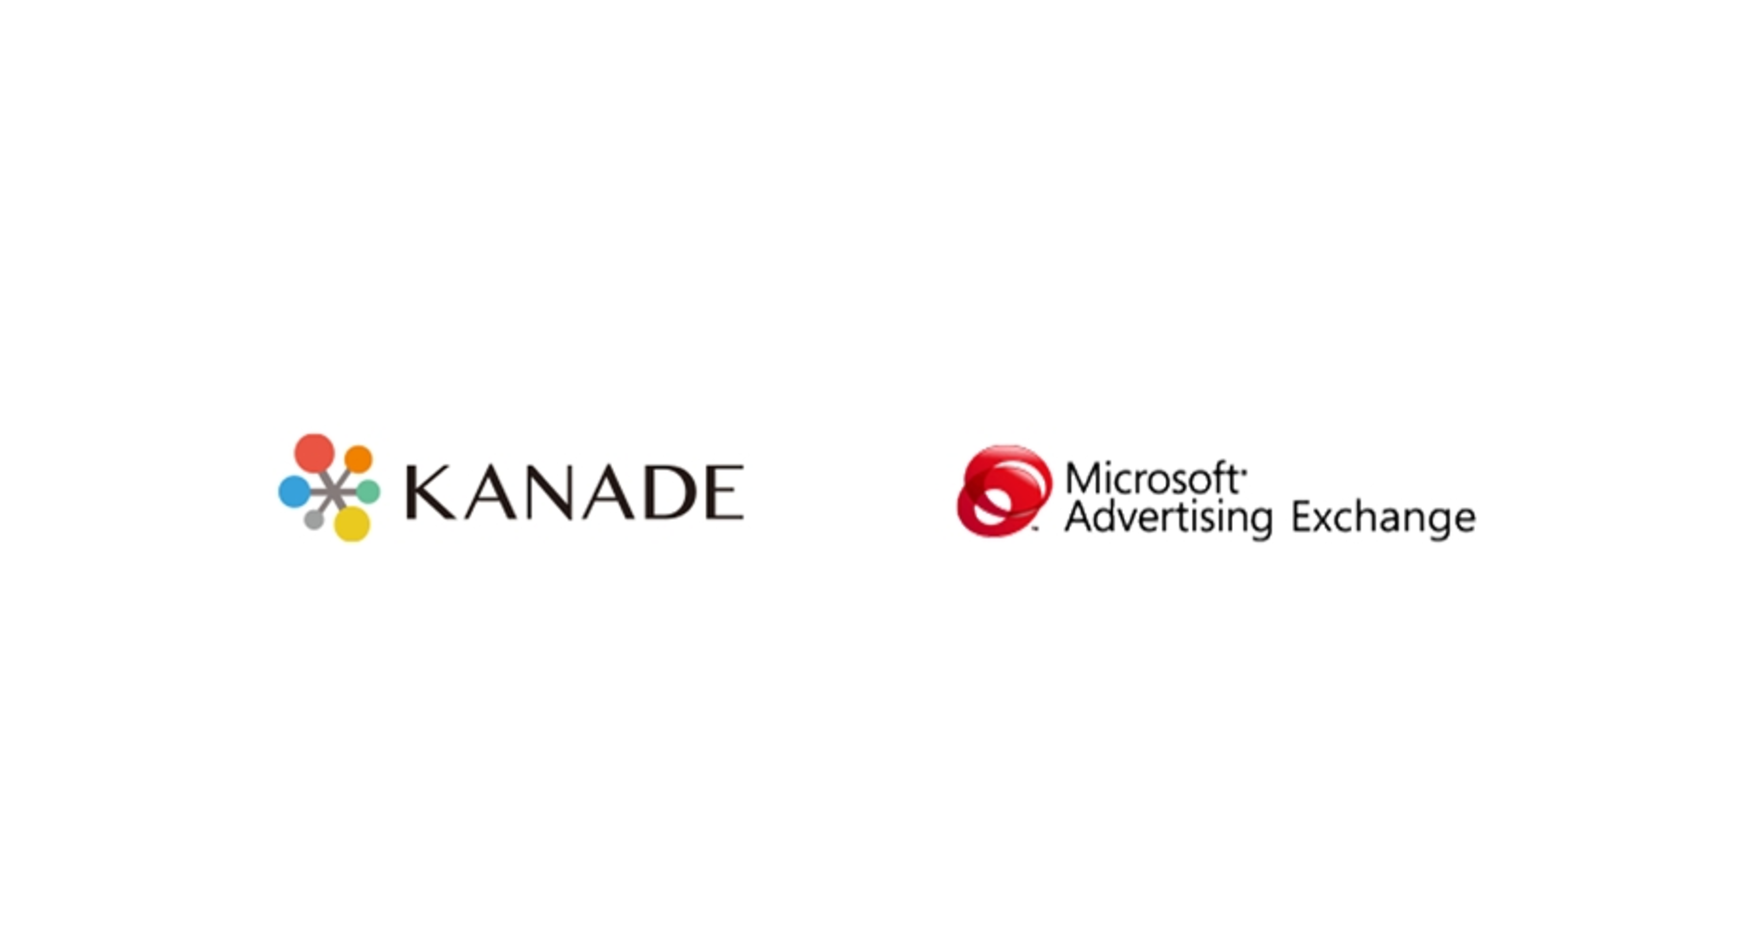 KCCSのKANADE DSP、「Microsoft Advertising Exchange」と Deal IDによる個別のRTB取引を開始